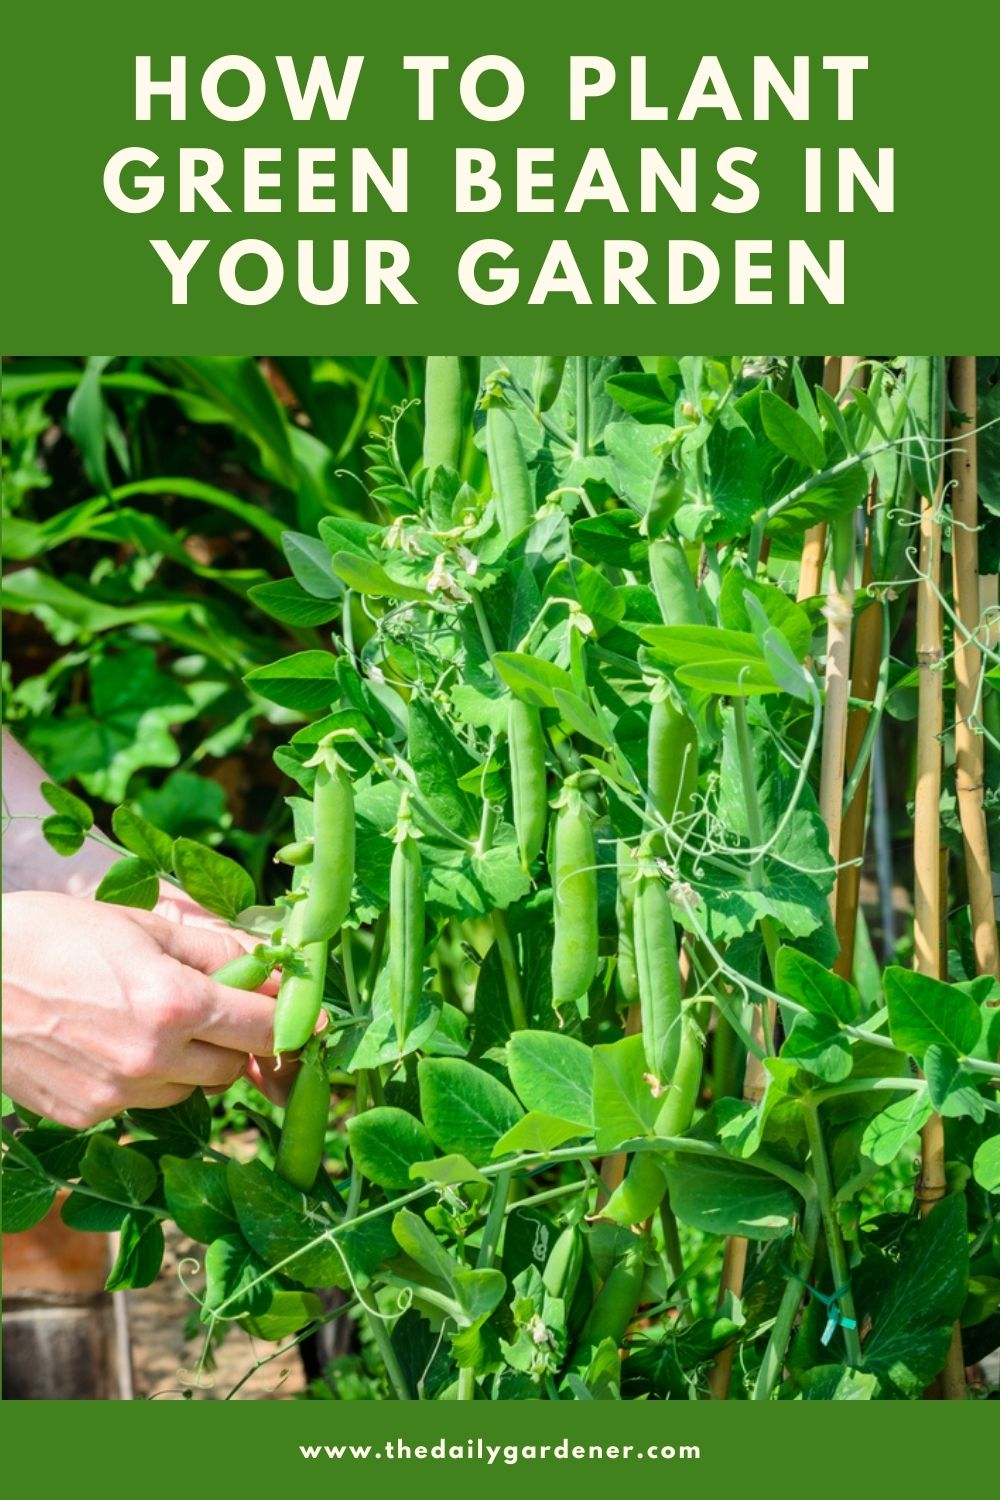 How to Plant Green Beans in Your Garden (Tricks to Care!) 2